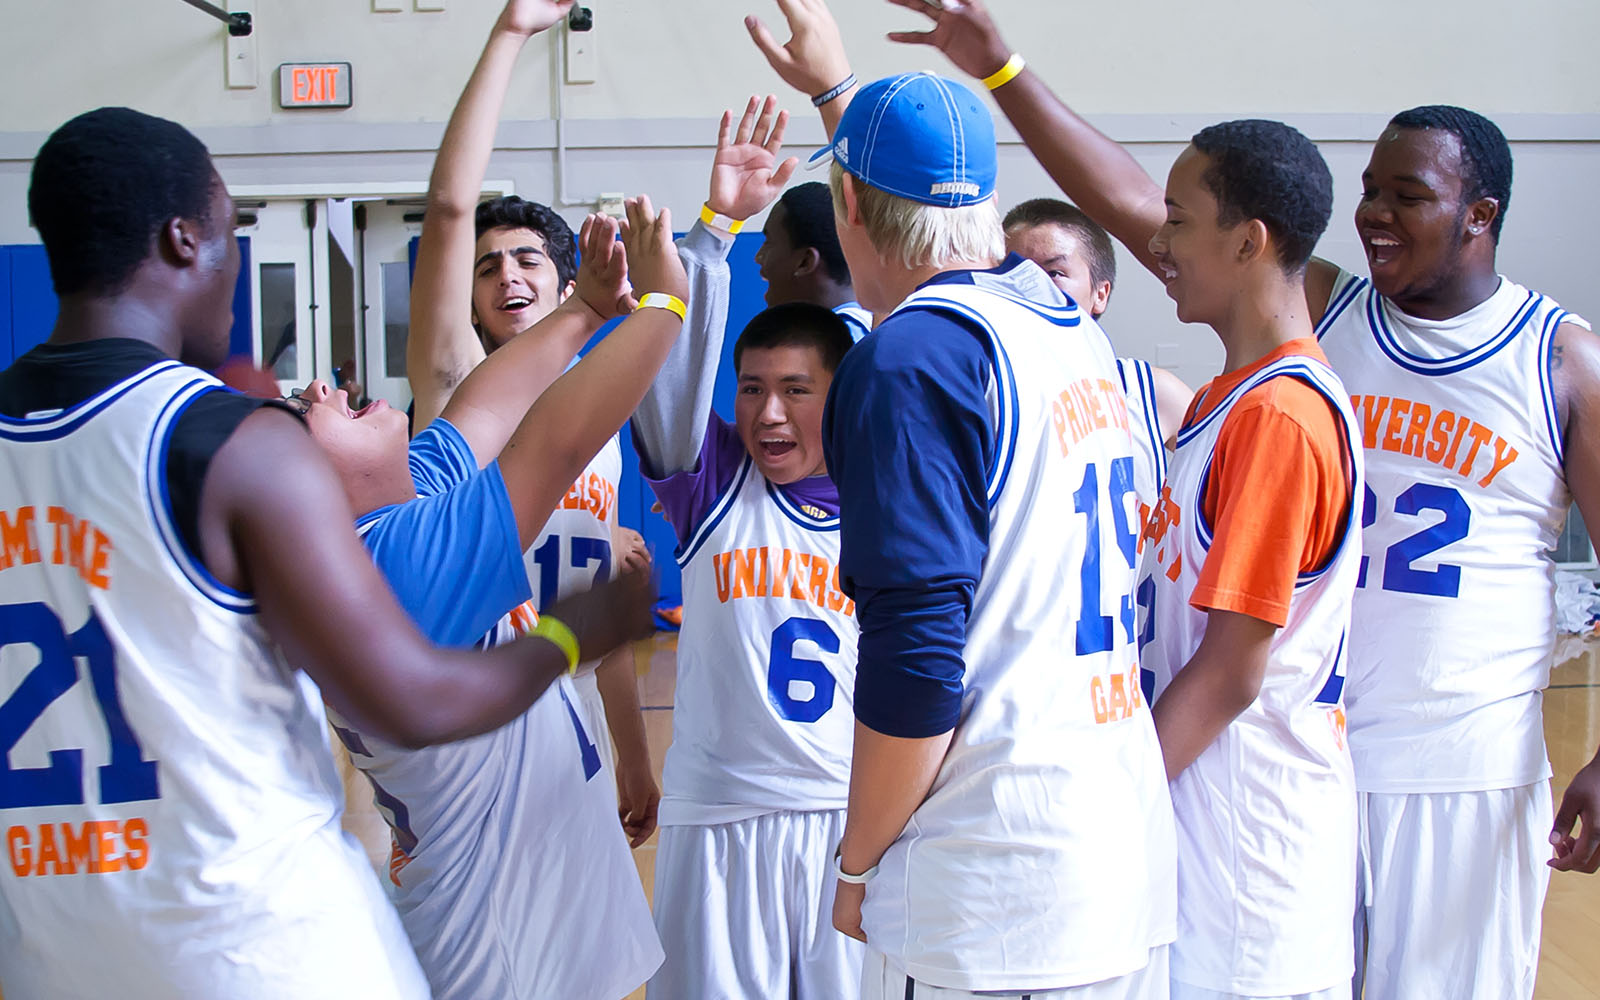 We can change the game for thousands of underserved youth. image